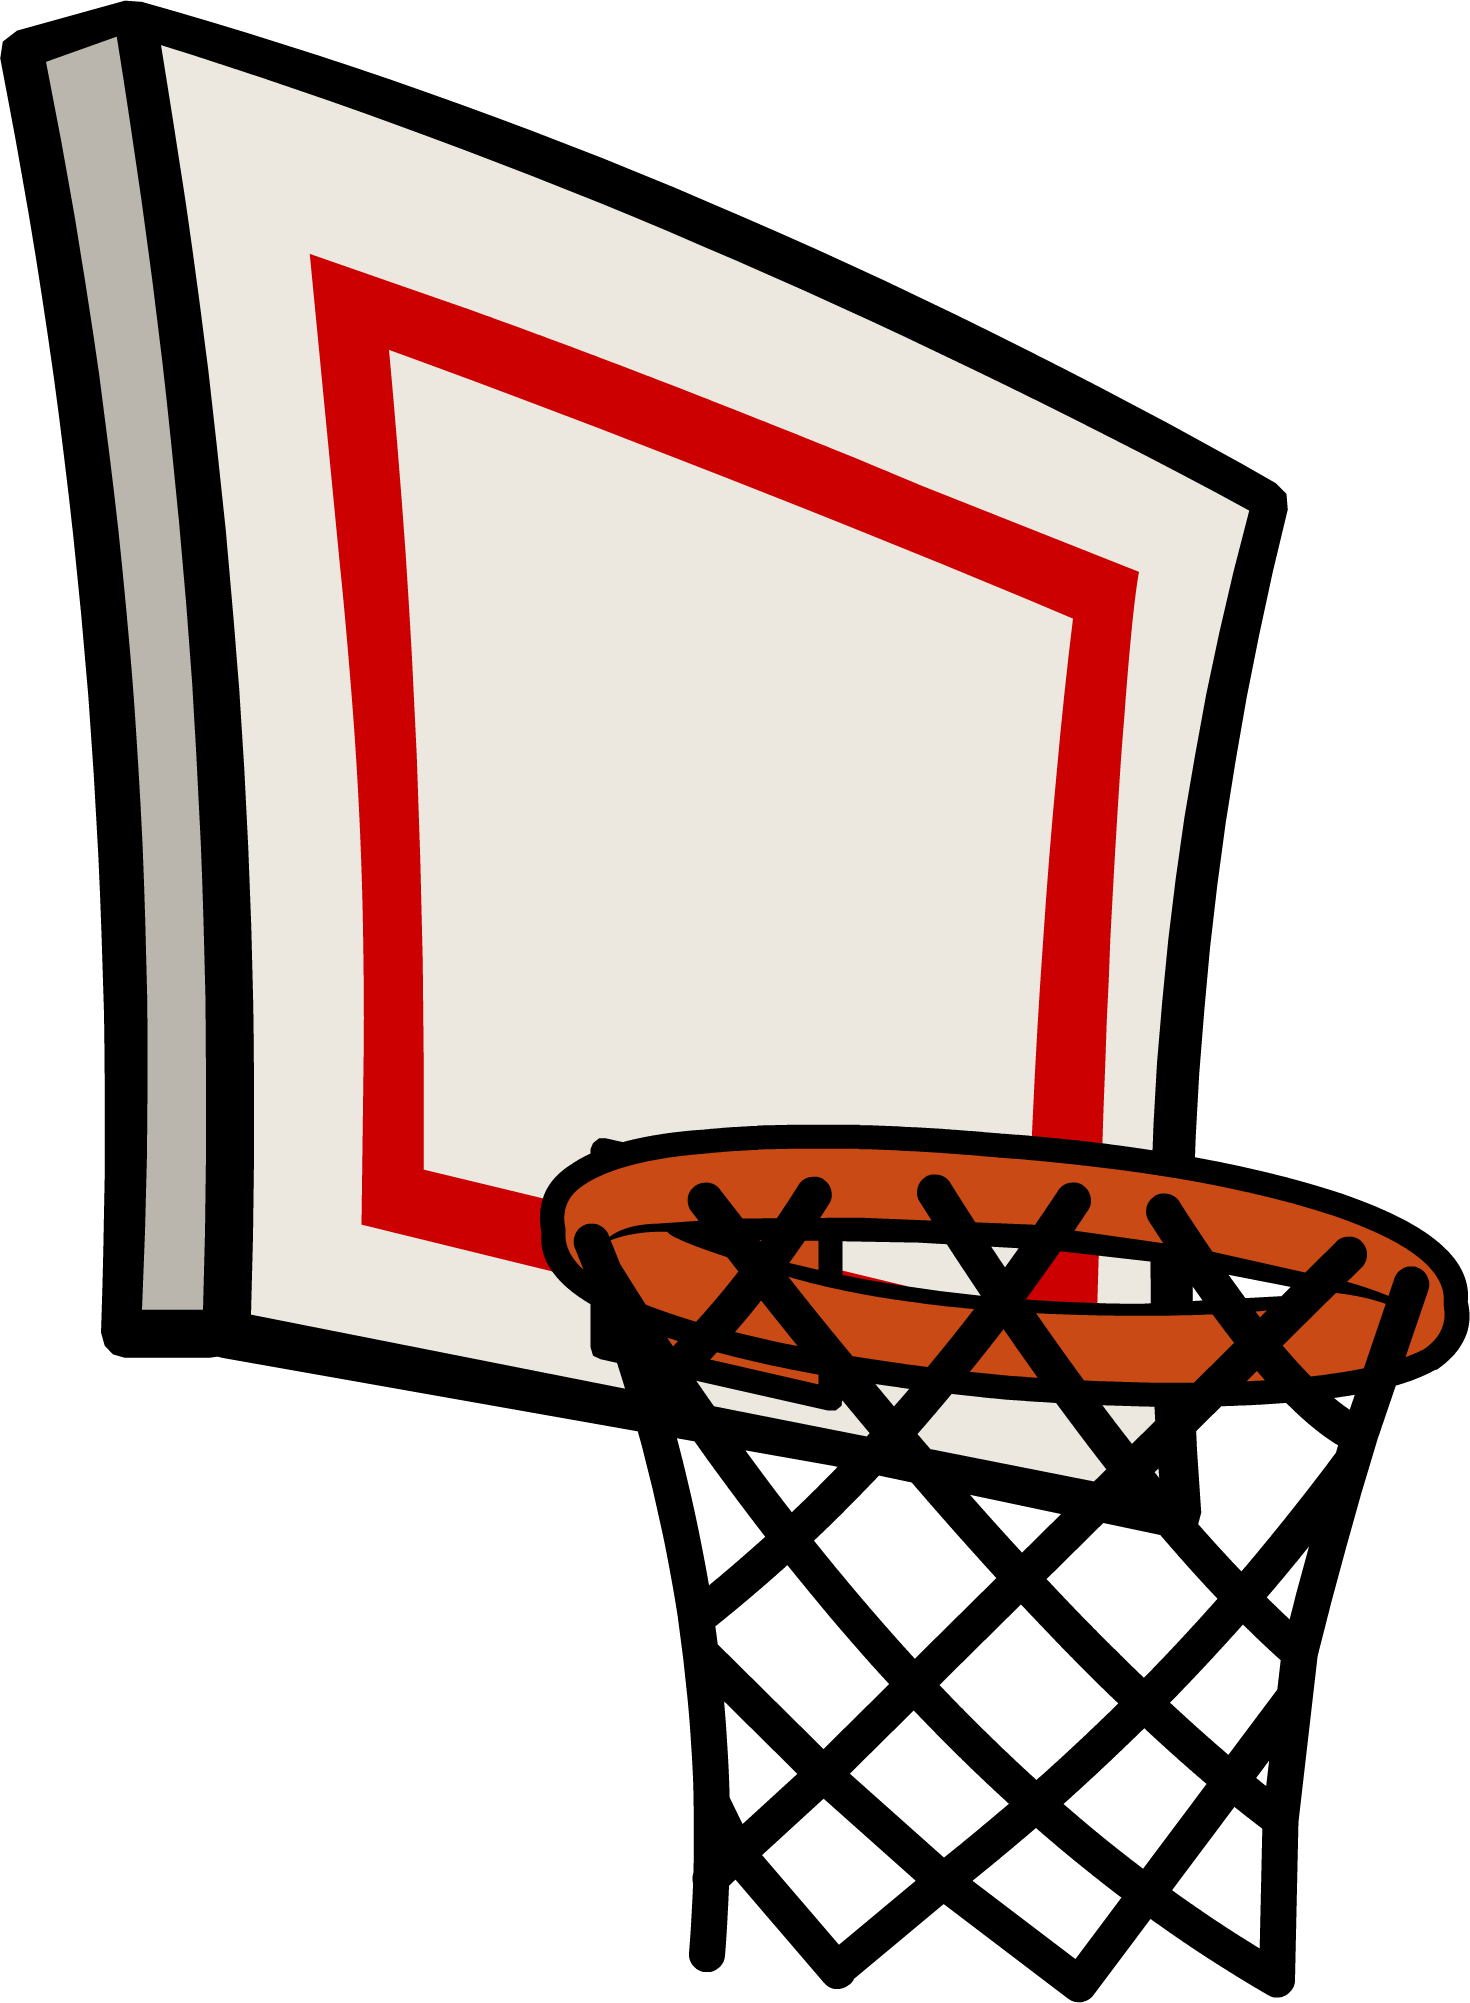 Hoop clipart. Red basketball clip art